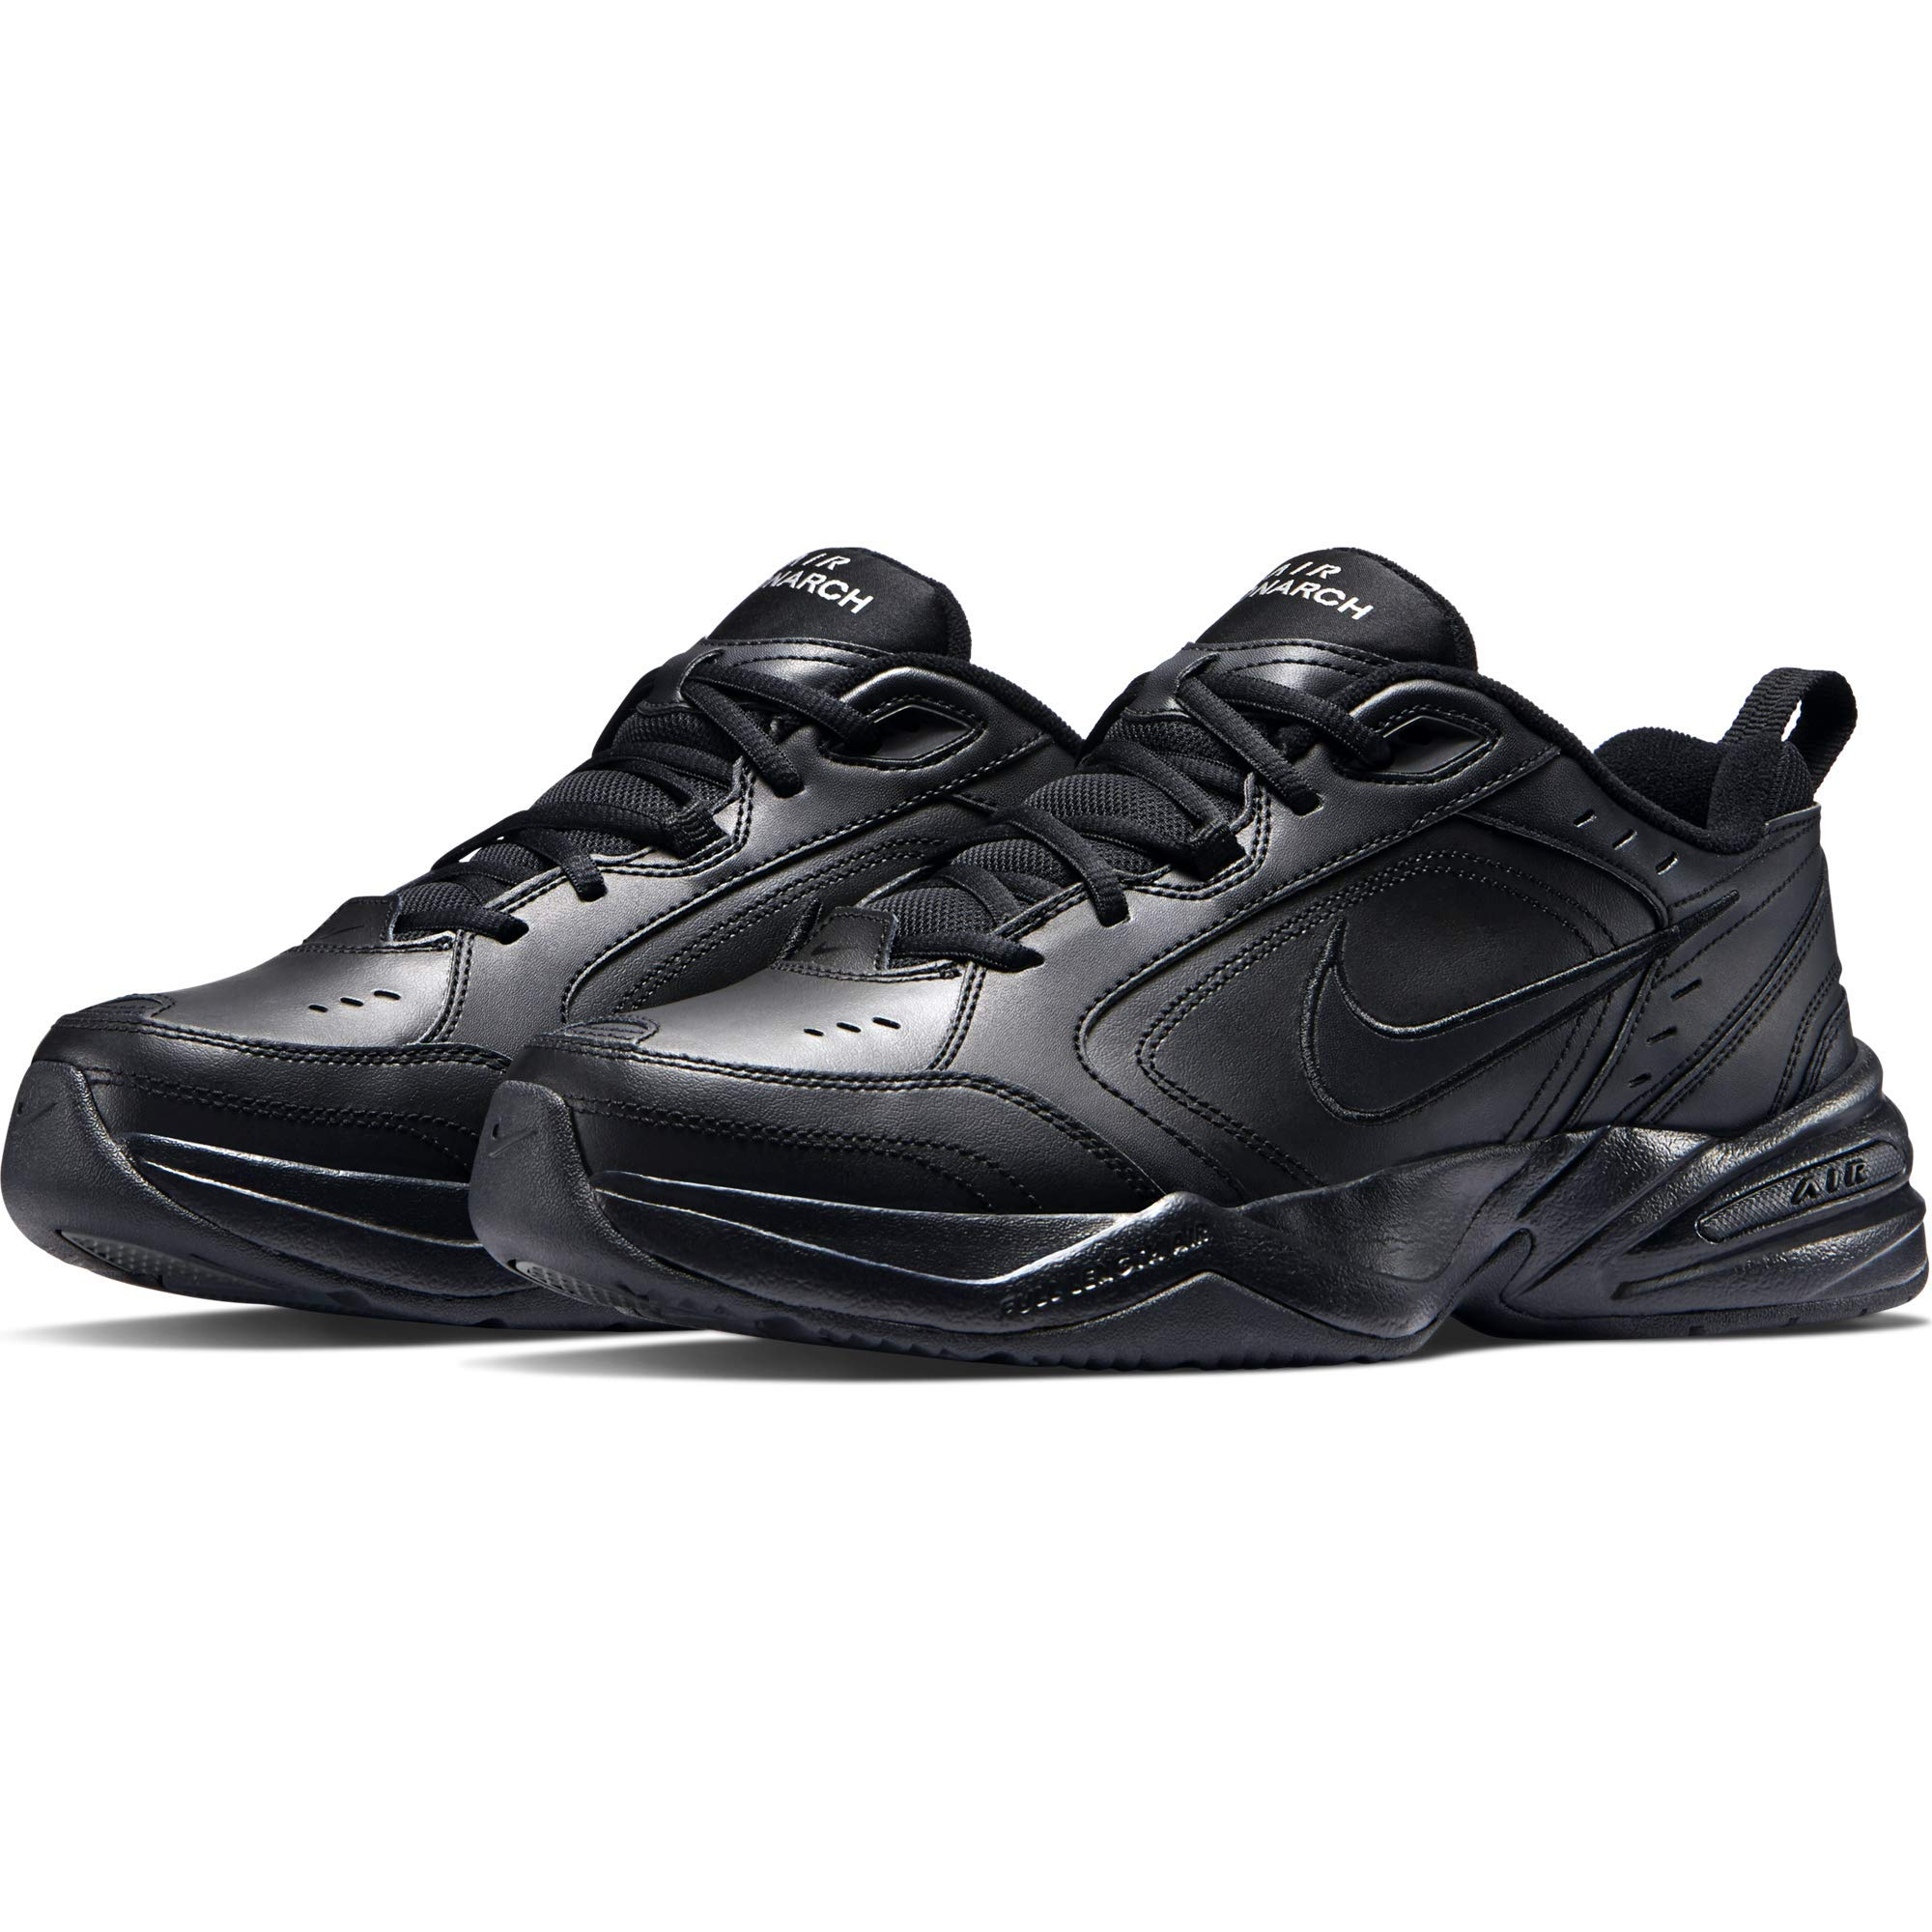 Nike Men's Air Monarch IV Cross Trainer, Black, 10 4E US by Nike